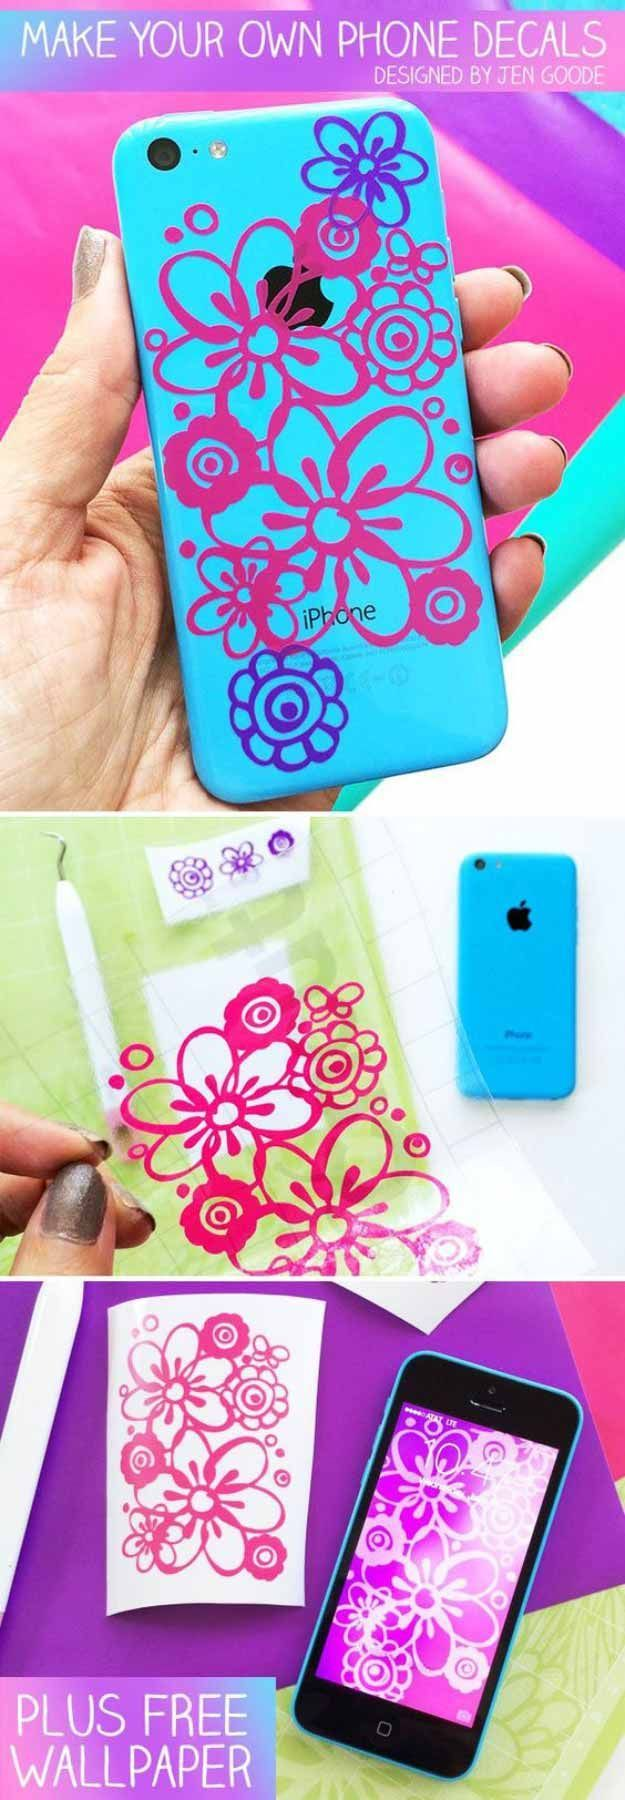 DIY Cricut Crafts Ideas Crafts Kid And Iphone Decal - How to make vinyl decals with a cricut